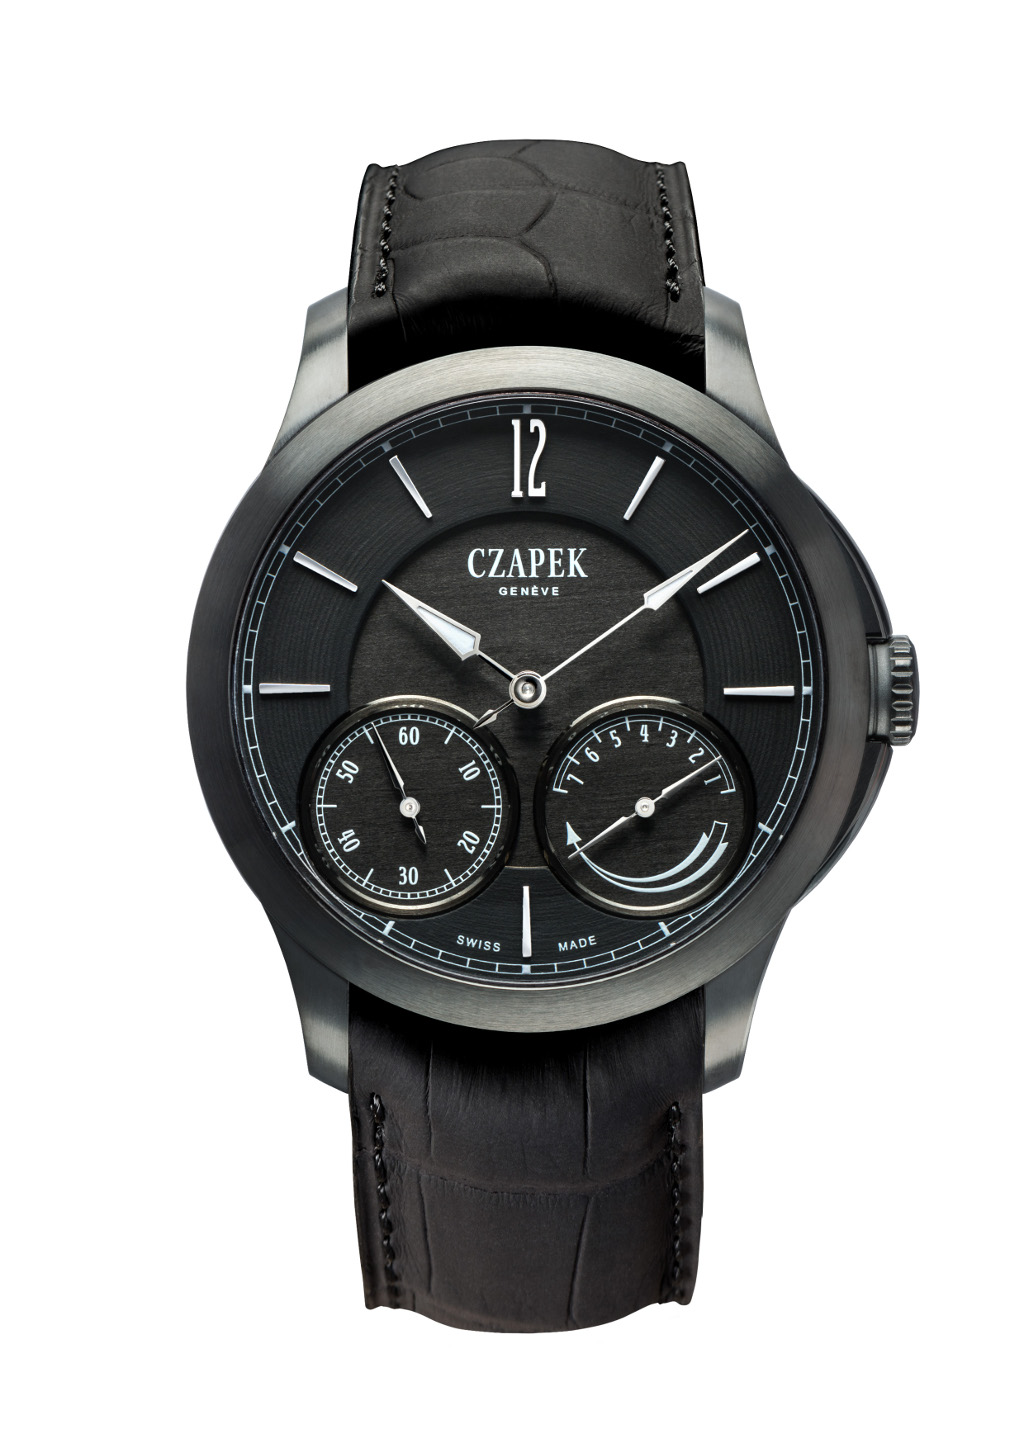 The Czapek & Cie. Quai de Bergues N.27, with the Diamondblack ADLC casing.